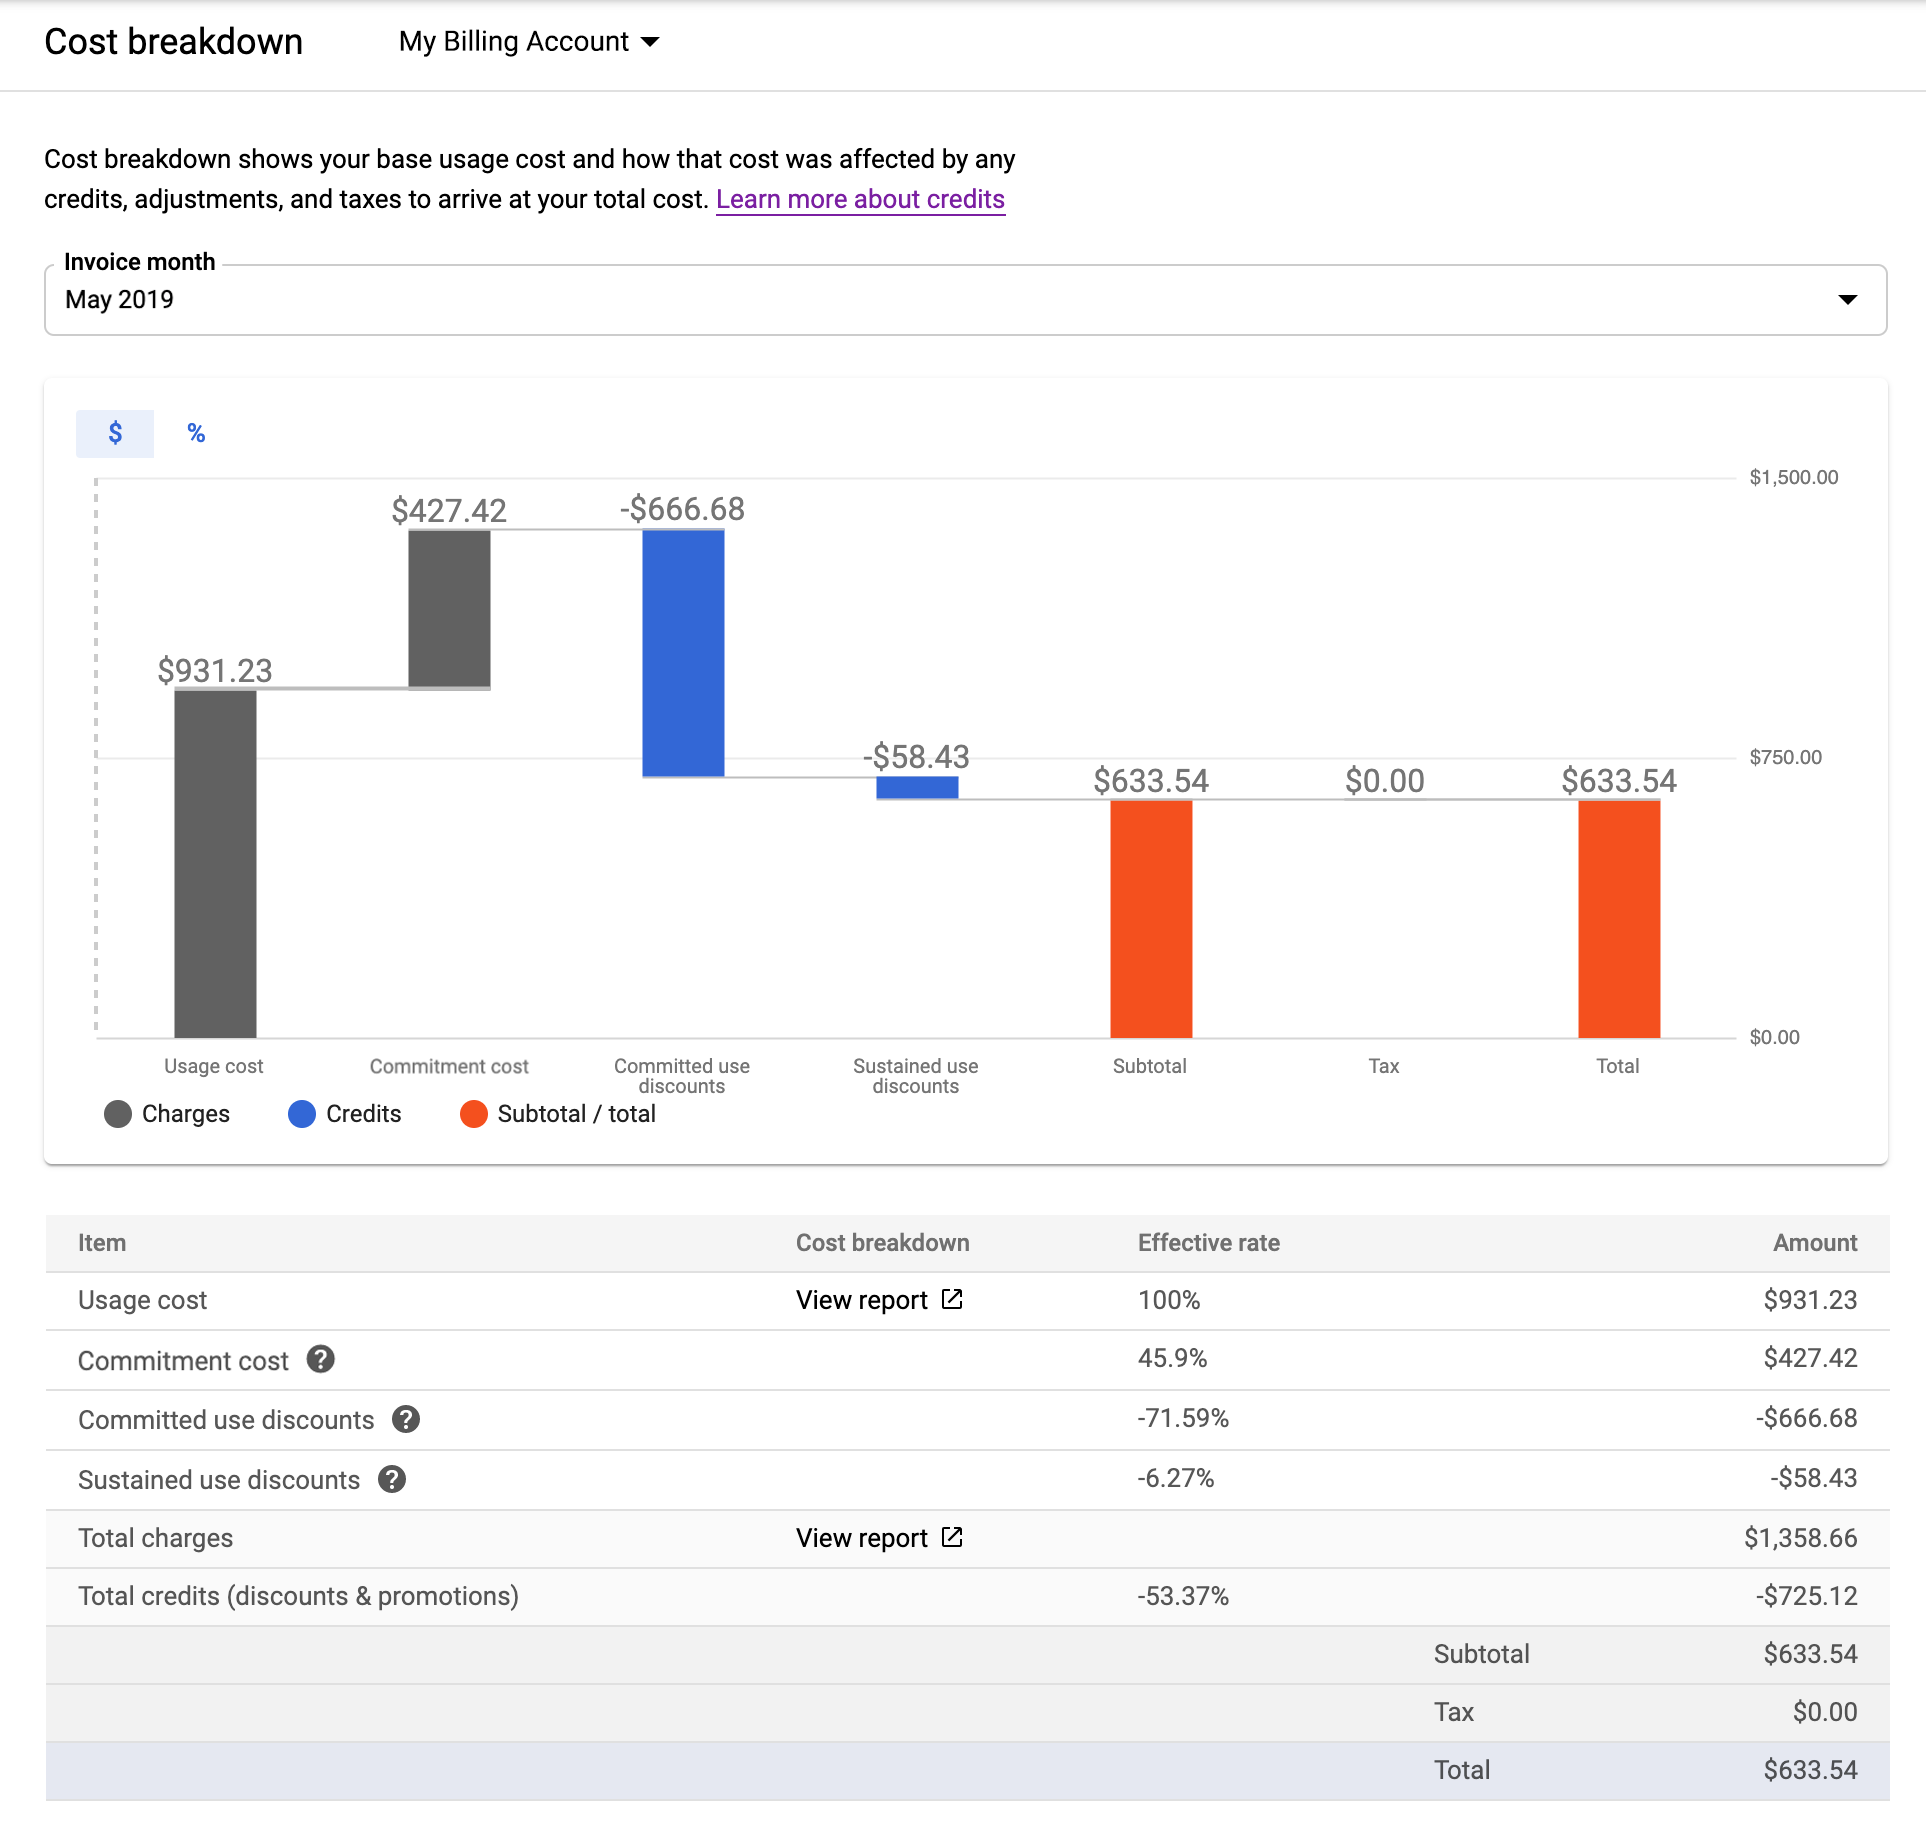 Example of a cost breakdown report, showing the base usage cost and           how that cost was affected by any credits, adjustments, and taxes.           It shows this in both chart and table formats for a month period.